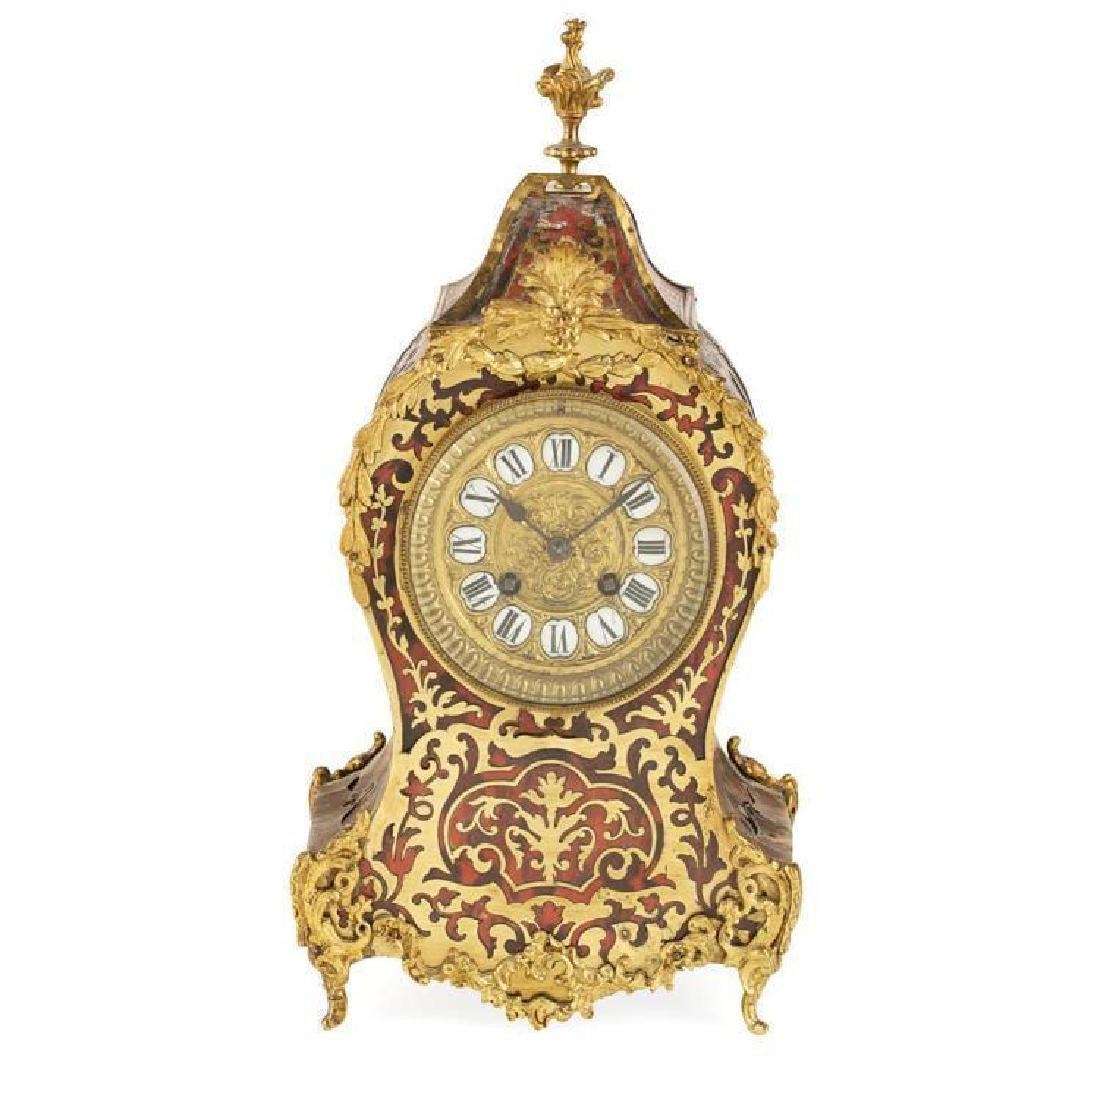 Y French Louis Xv Style Boulle Mantel Clock 19th - 2